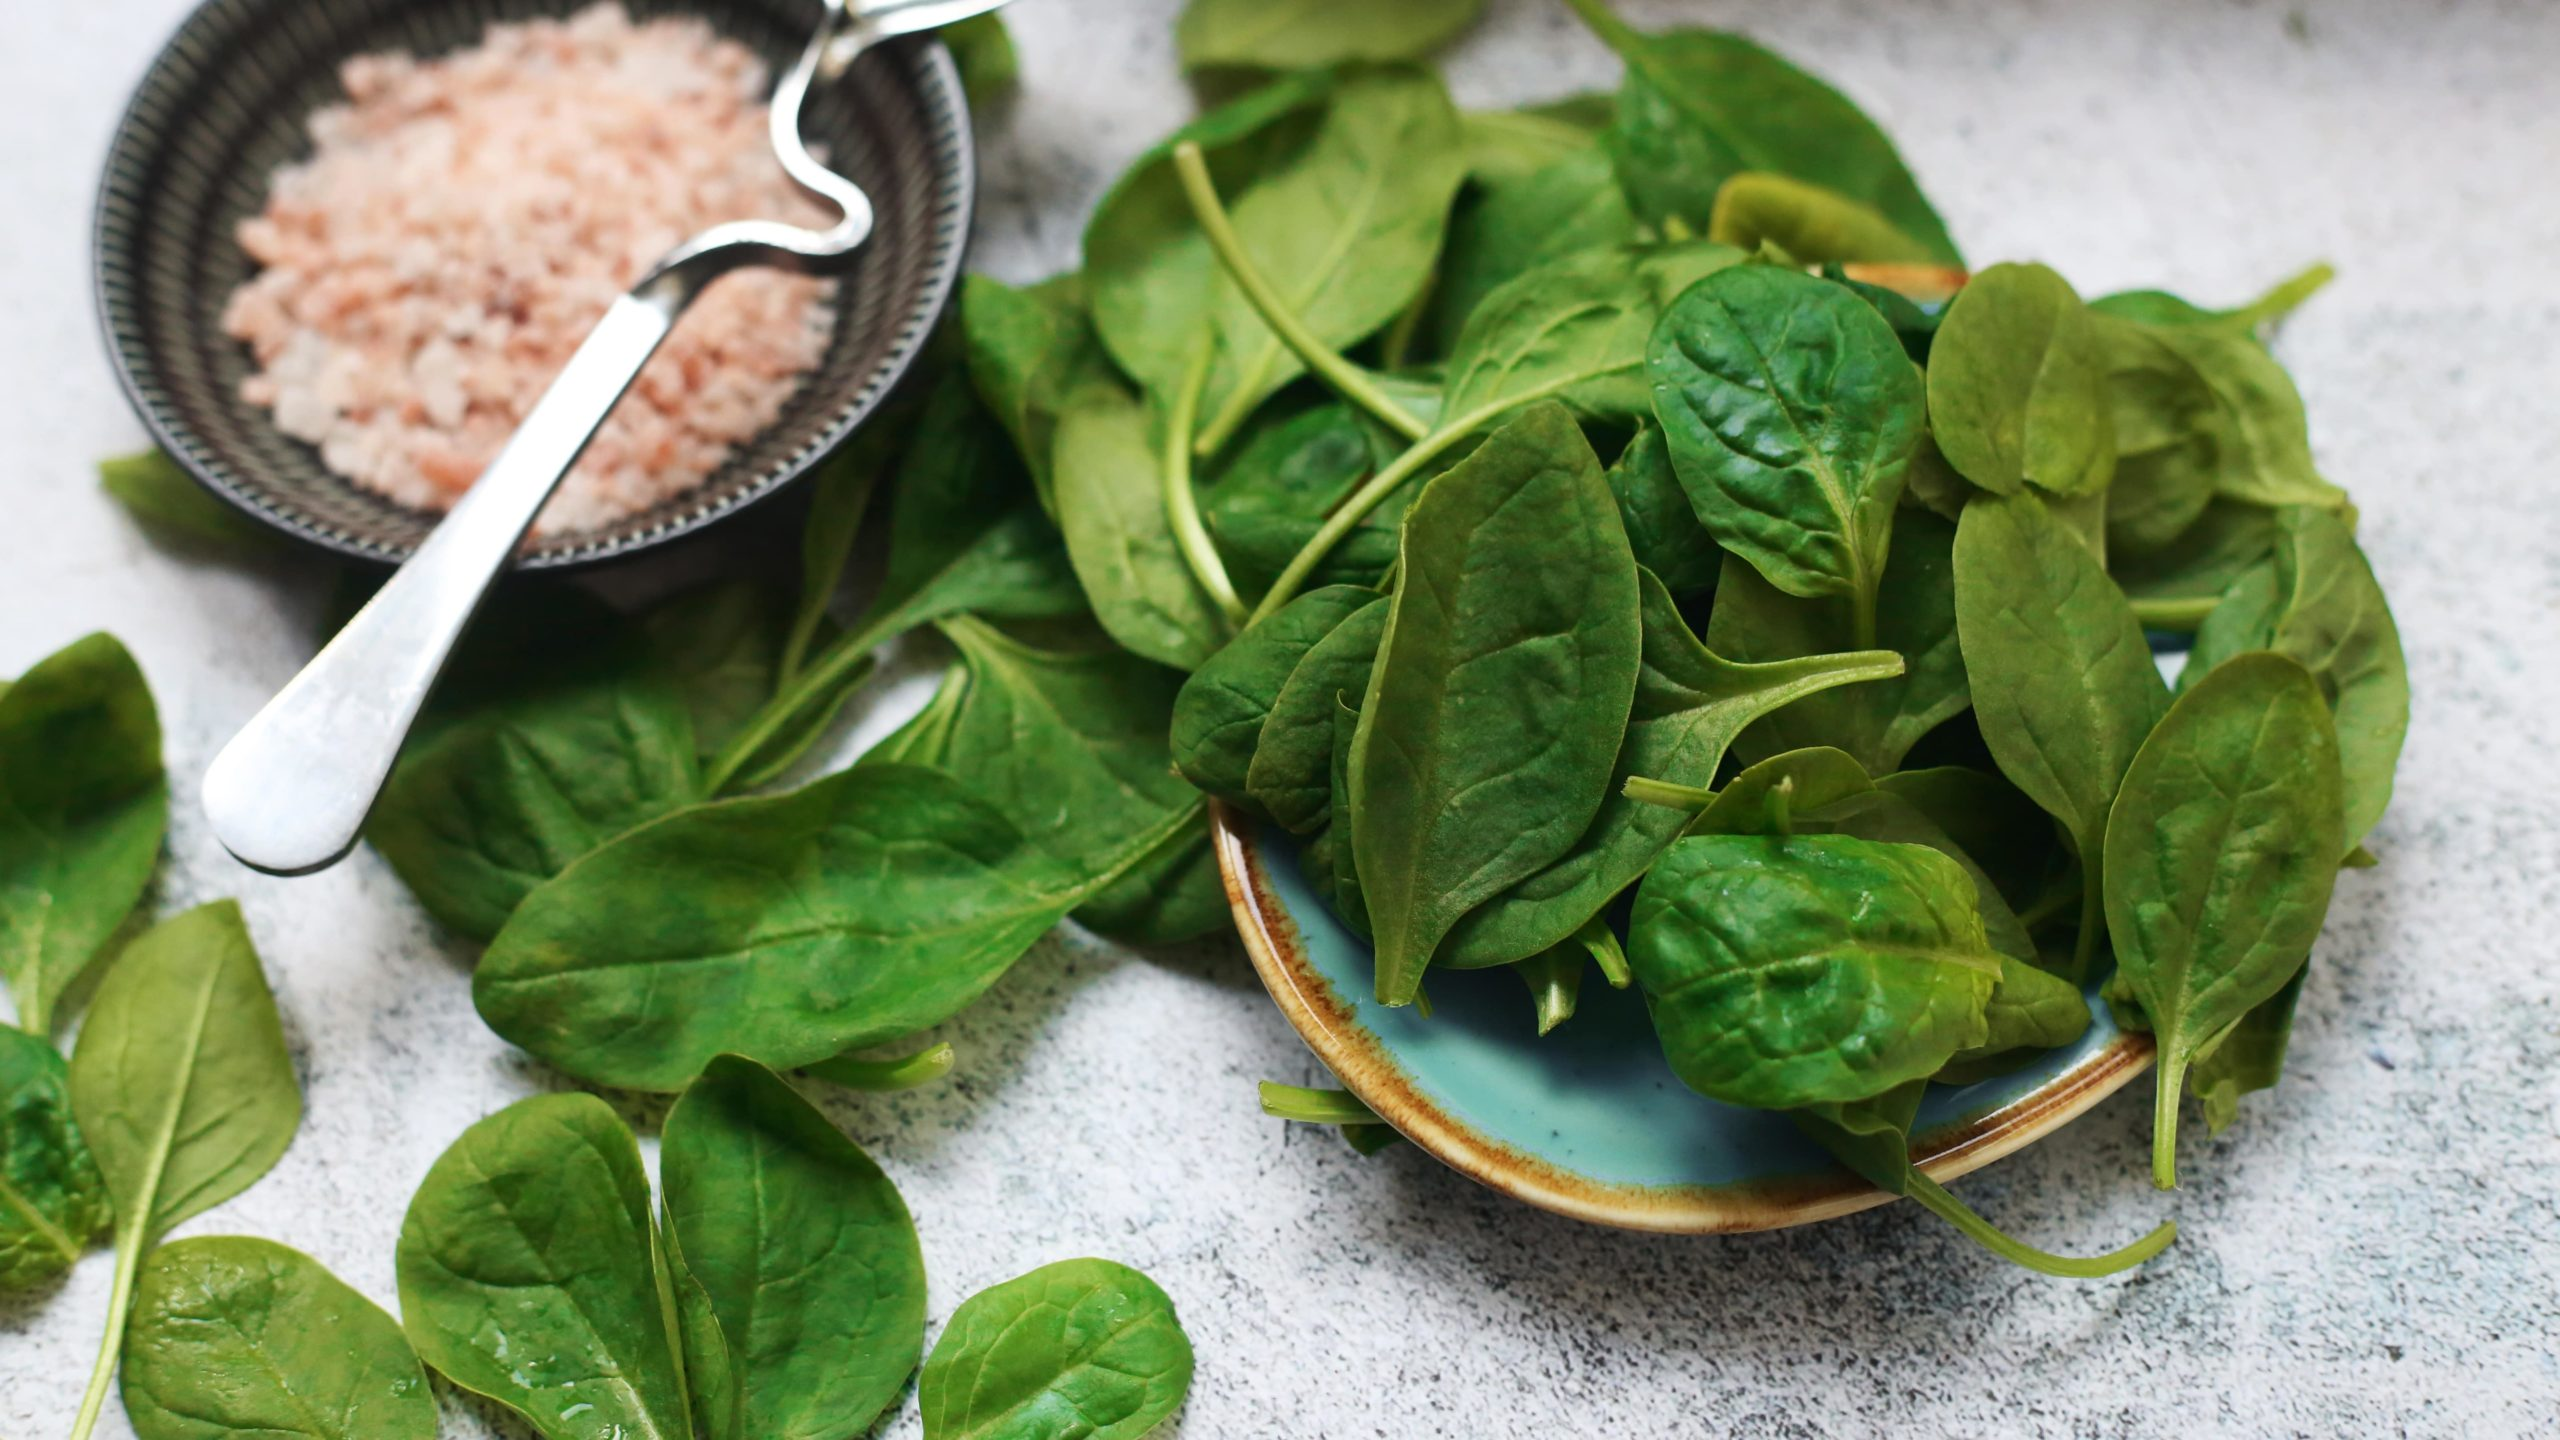 Spinach is a source of vitamin K. Increasing intake and supplements are usually safe, but side effects are possible